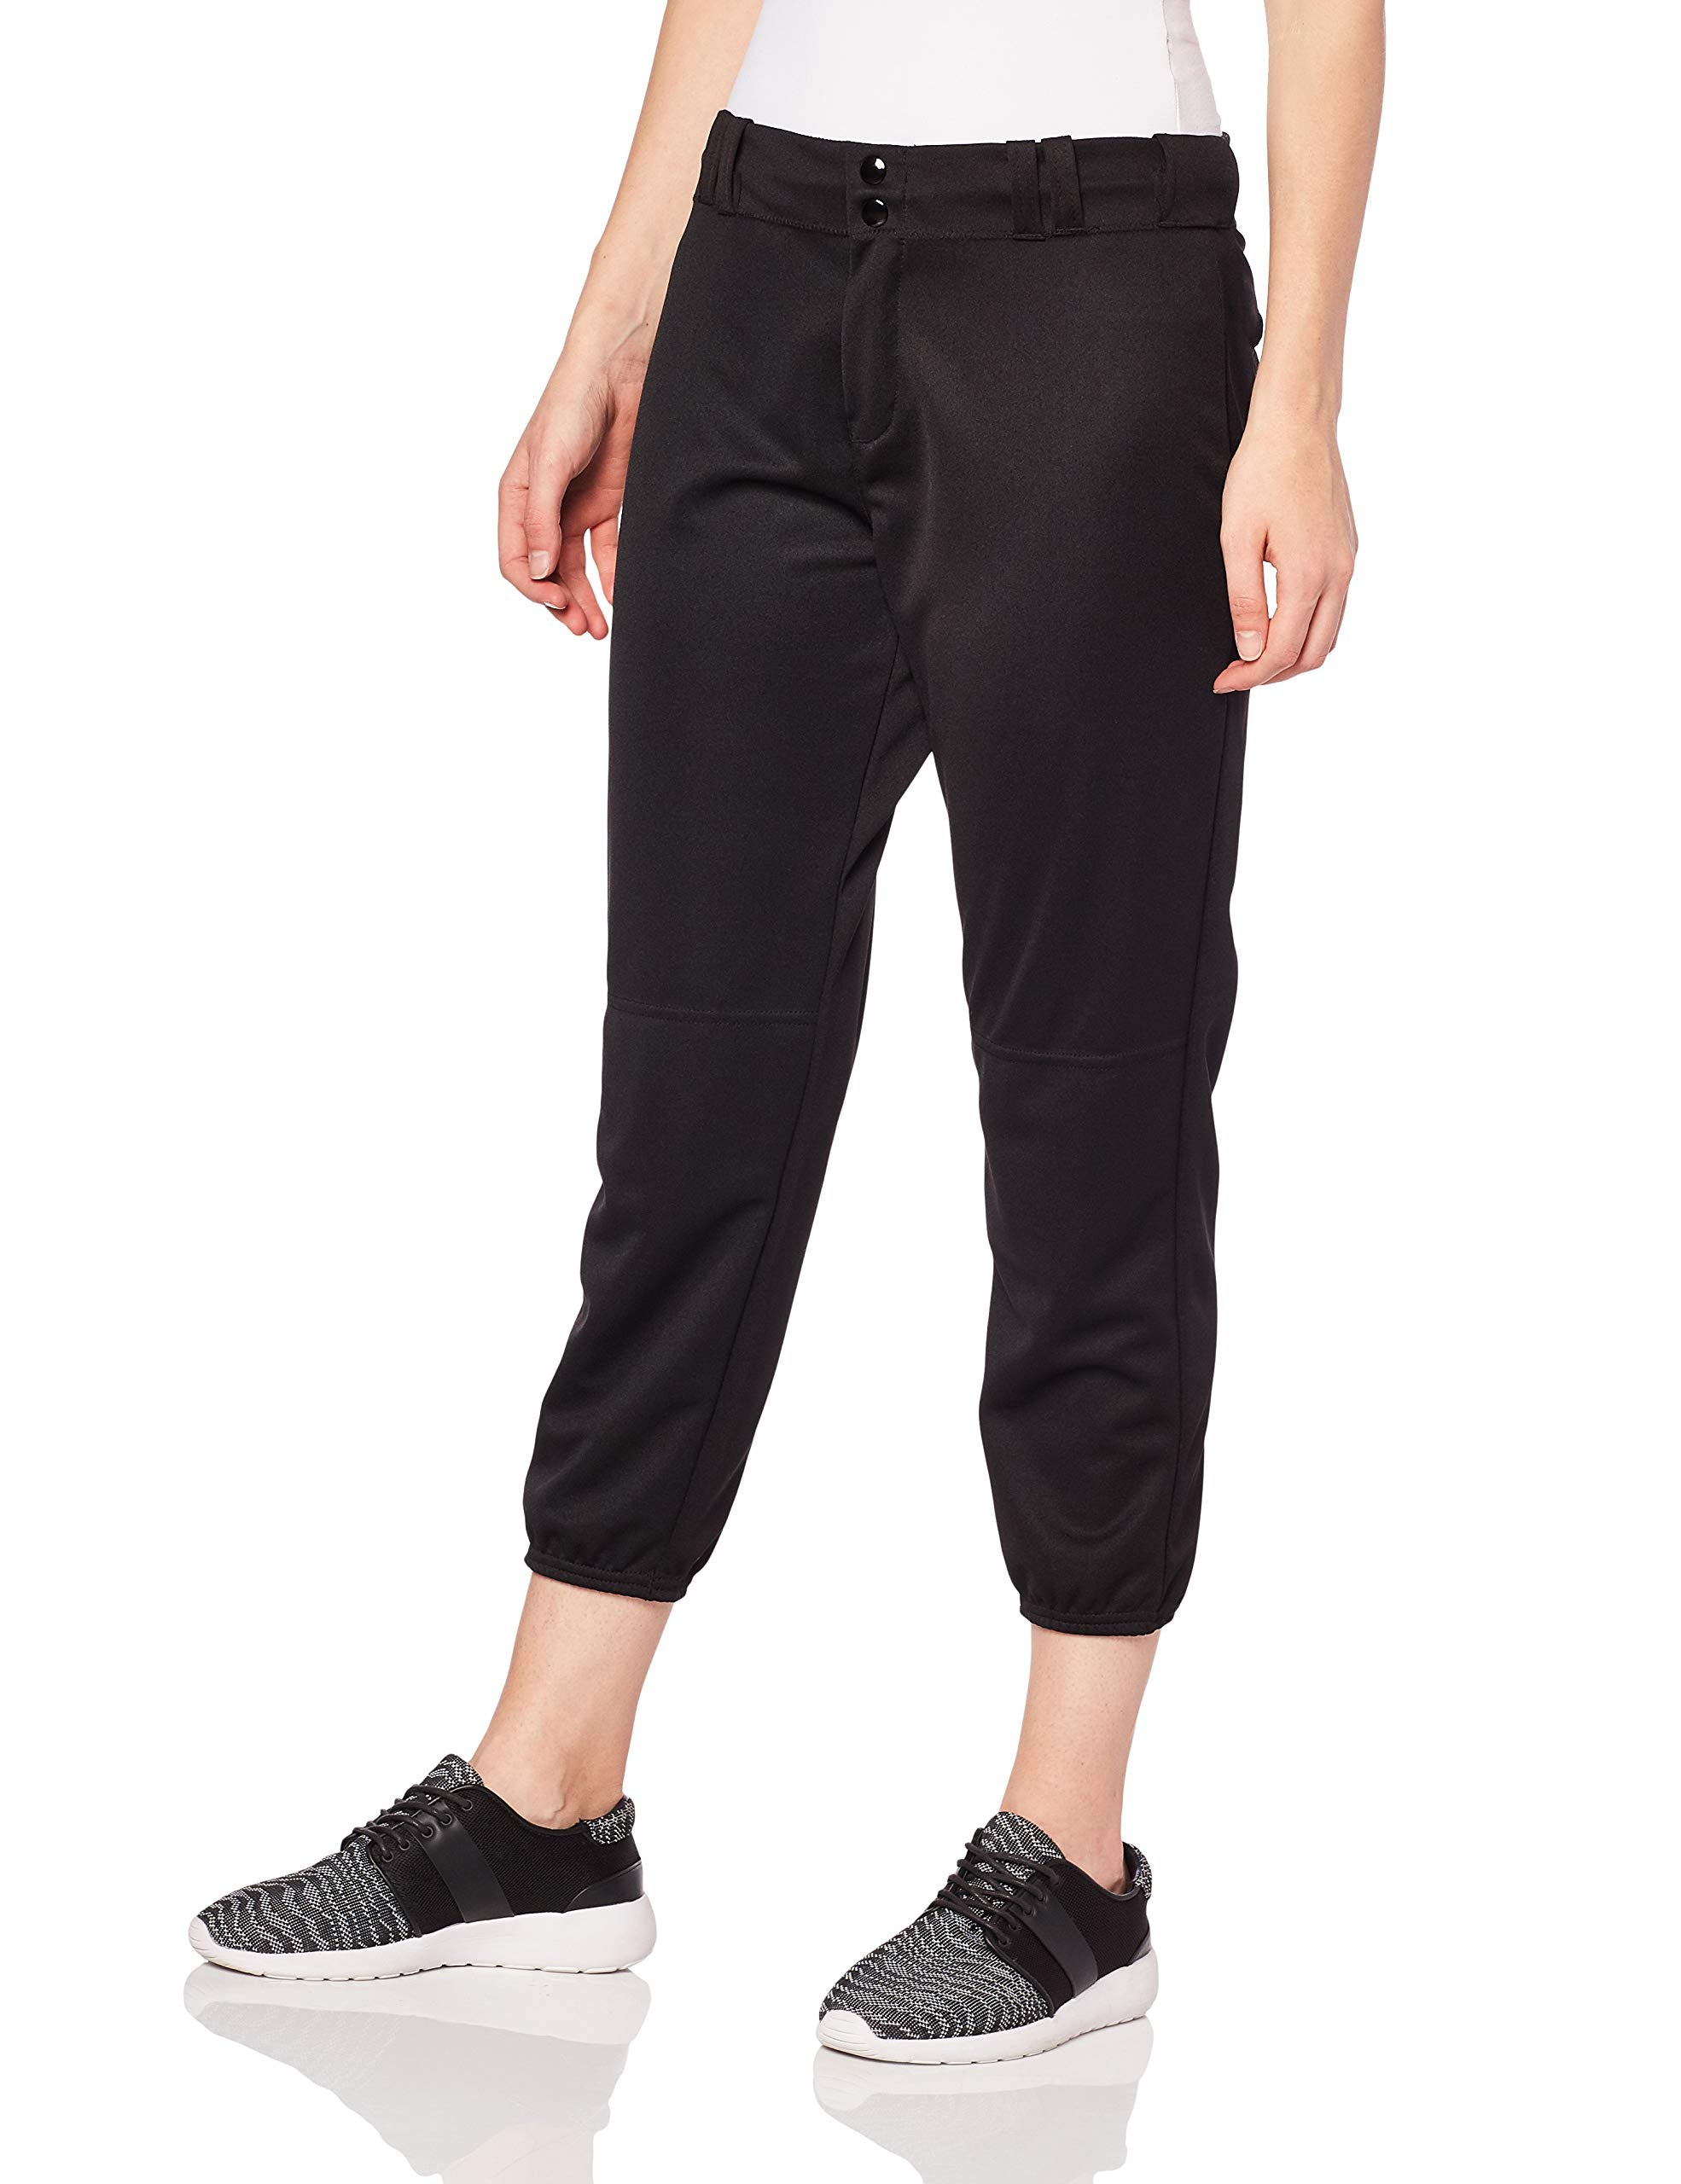 Alleson Ahtletic Women's Fast Pitch Softball Belt Loop Pants, Black - Ctfitnesswear